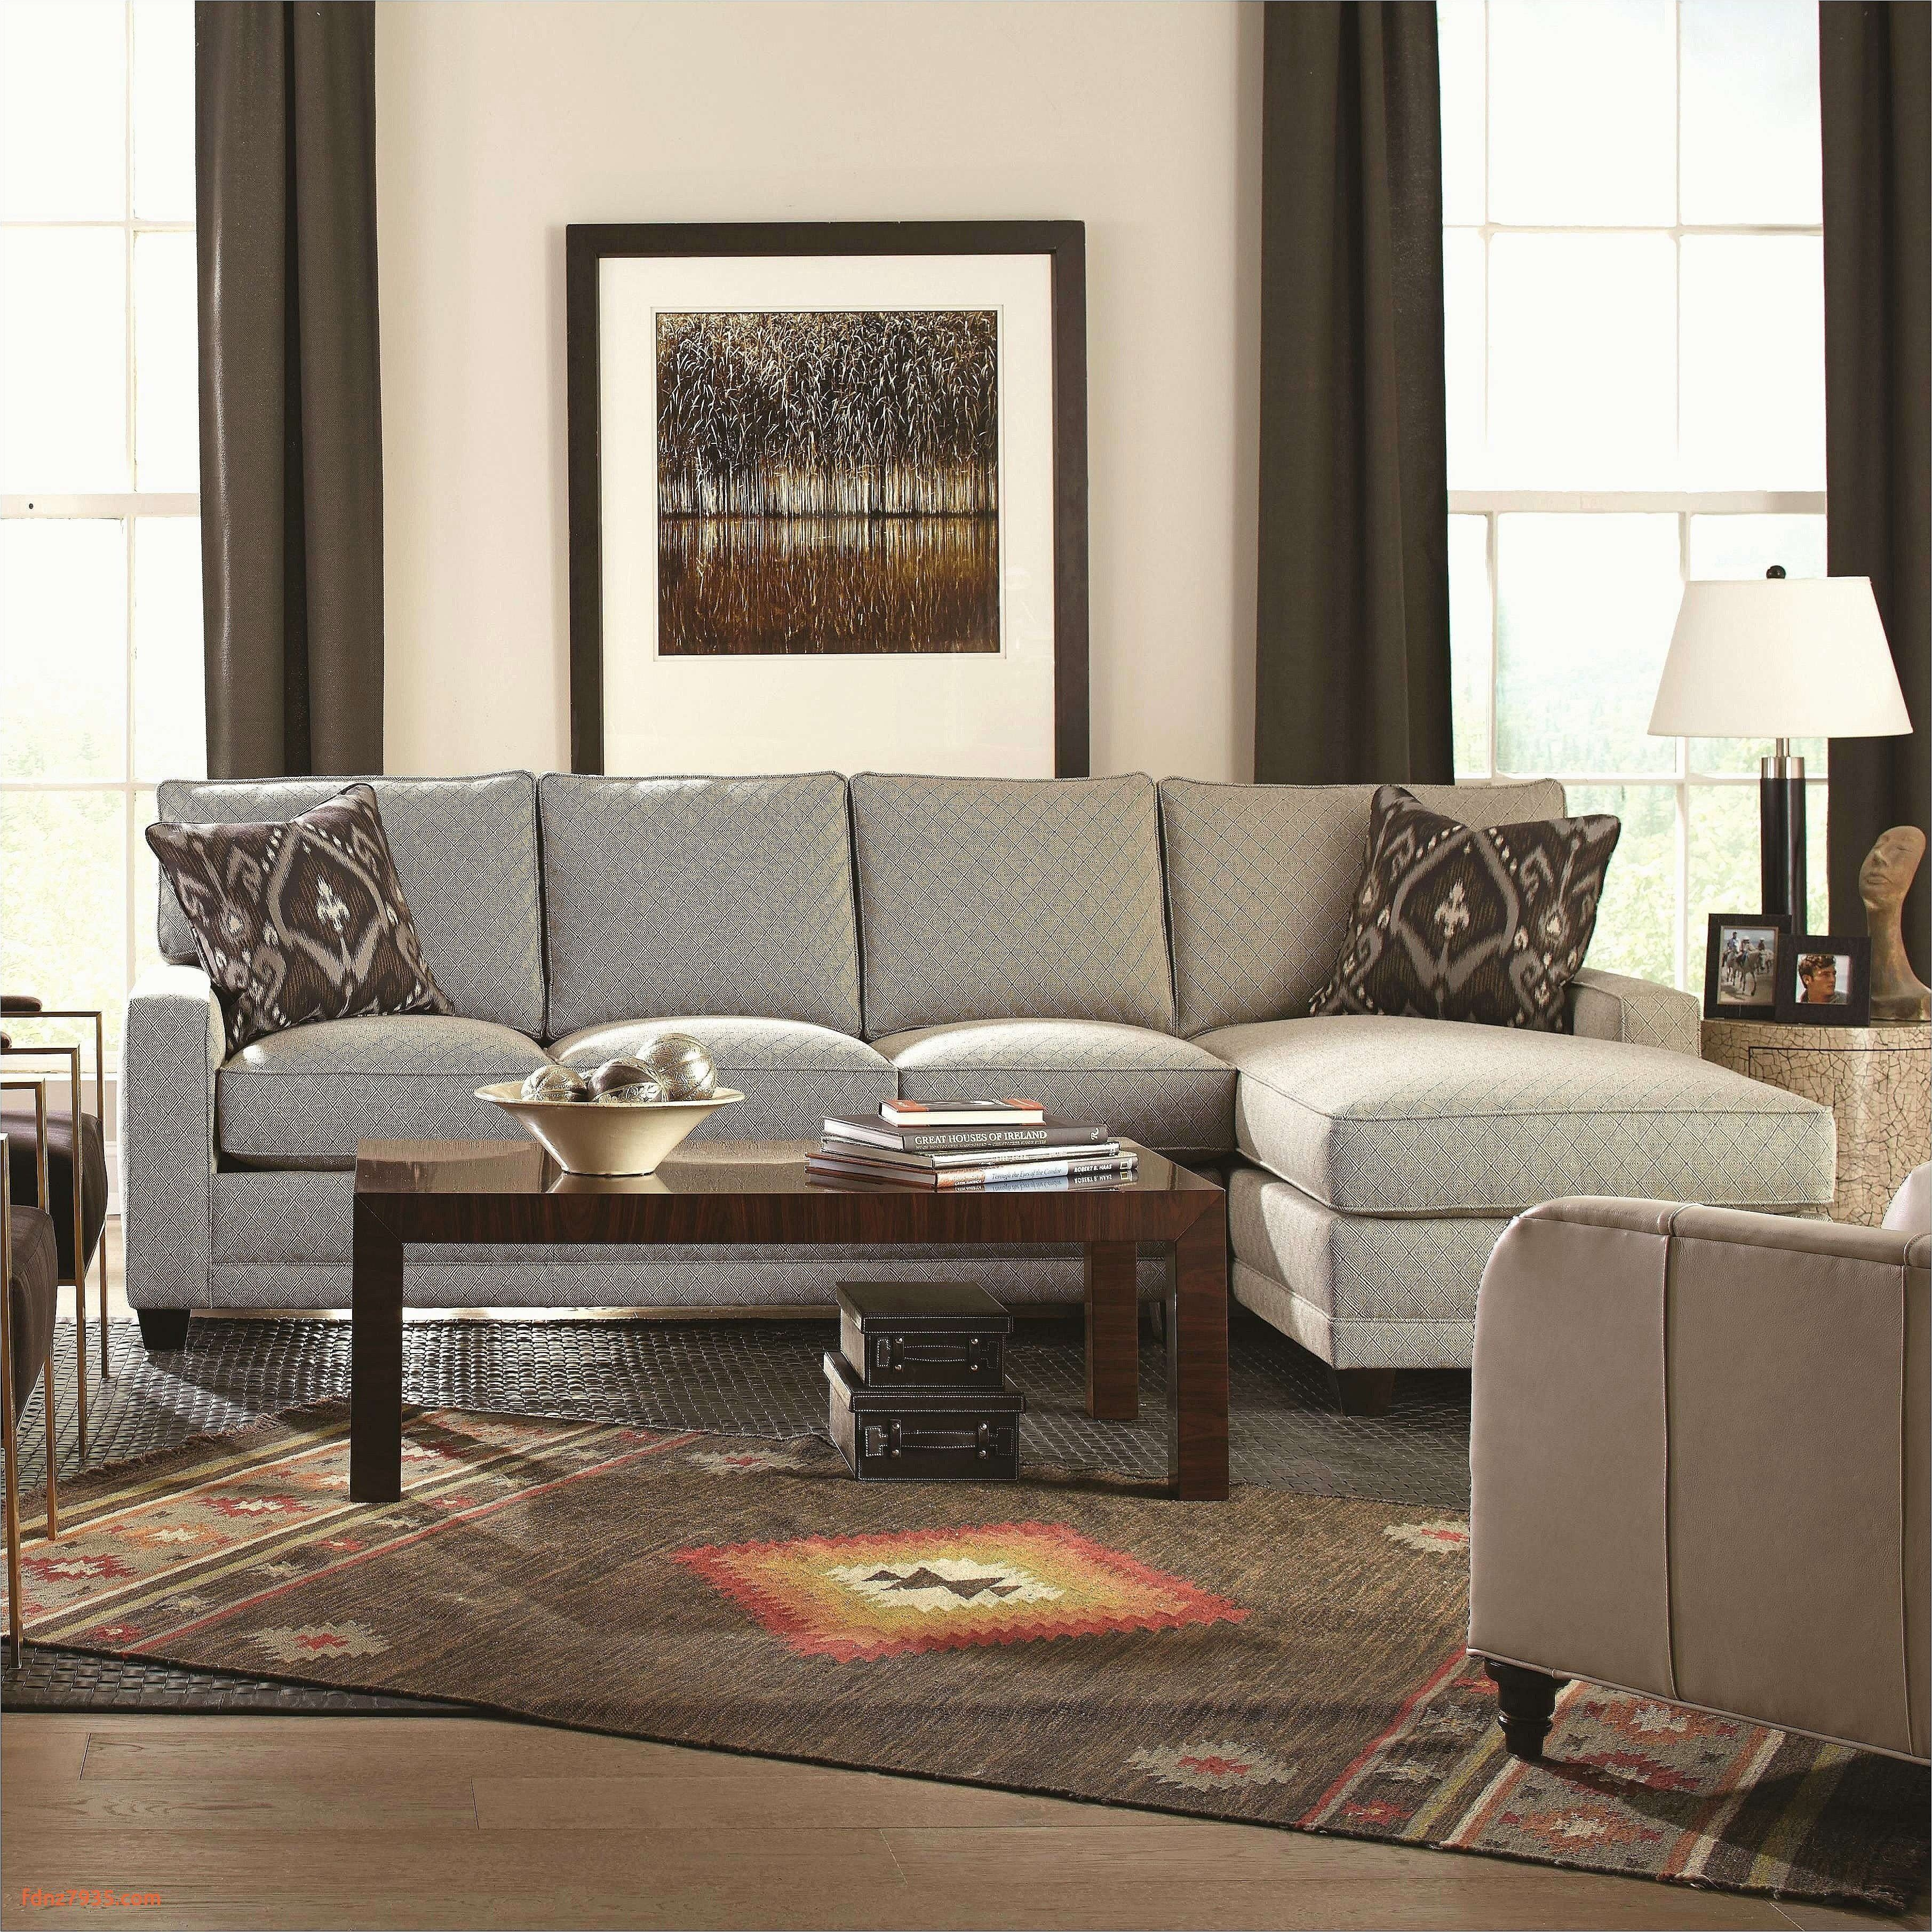 Red And Black Living Room Best Of Red And Black Furniture For Living Room Fresh Sofa Design In 2020 Beige Living Rooms Contemporary Bedroom Living Room Modern #red #and #black #furniture #for #living #room